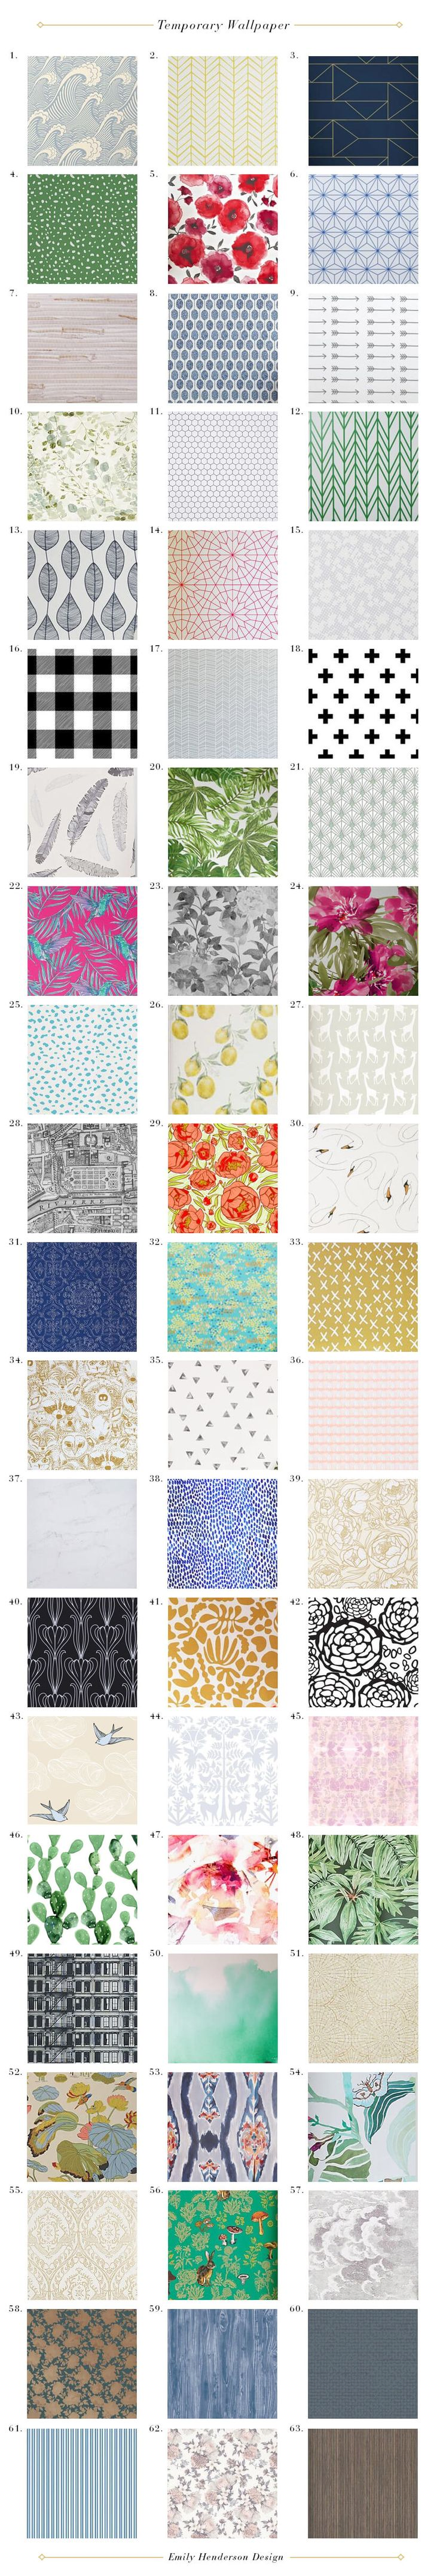 Temporary Wallpaper_Roundup_Self Stick_Self Adhesive_mural_wall covering_Emily Henderson